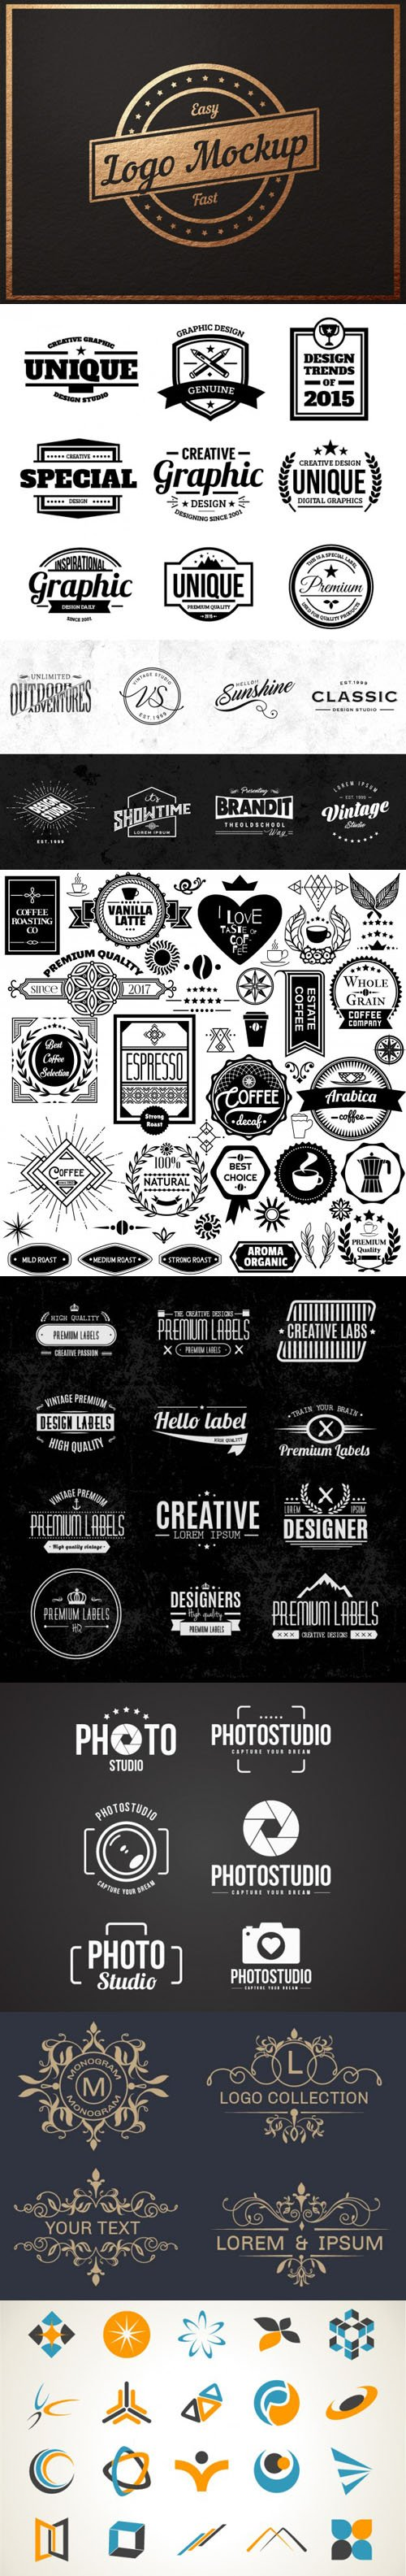 Pack of Logos & Badges Collection in [Ai/EPS/PSD]